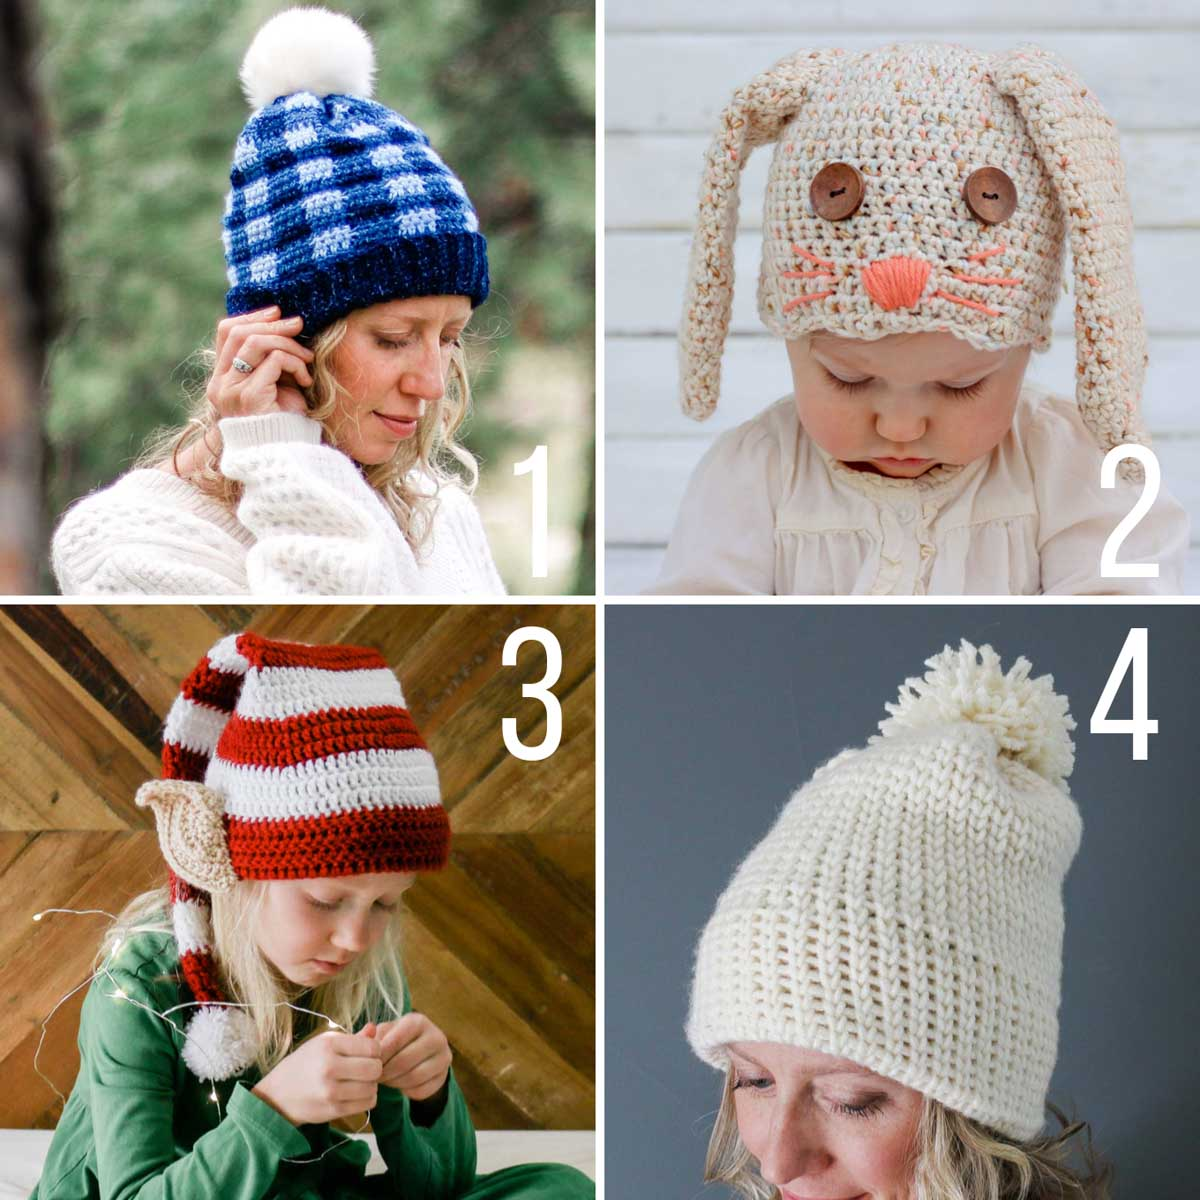 Free crochet hat patterns, including a plaid crochet beanie, a floppy-eared bunny hat, a Santa's helper Elf hat, and a knit-look crochet beanie.